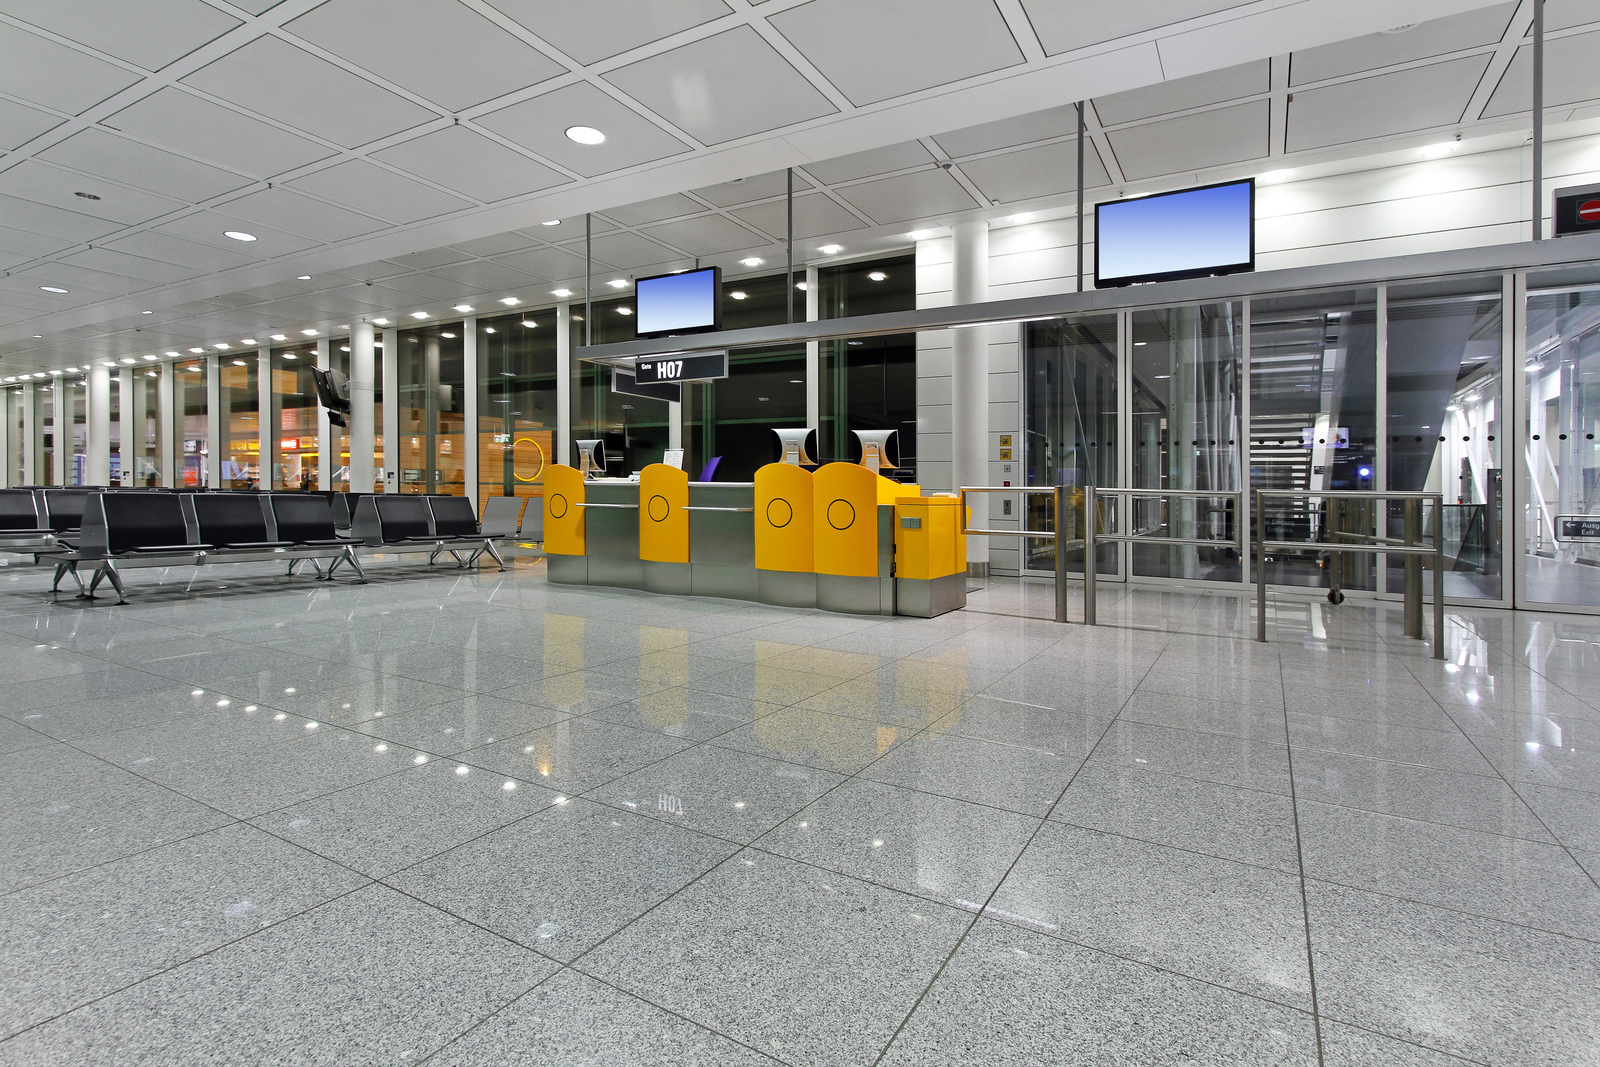 Airport terminal with no people. Gate H07, Shiny floors, rows of empty chairs. Yellow desk at gate but no attendants.